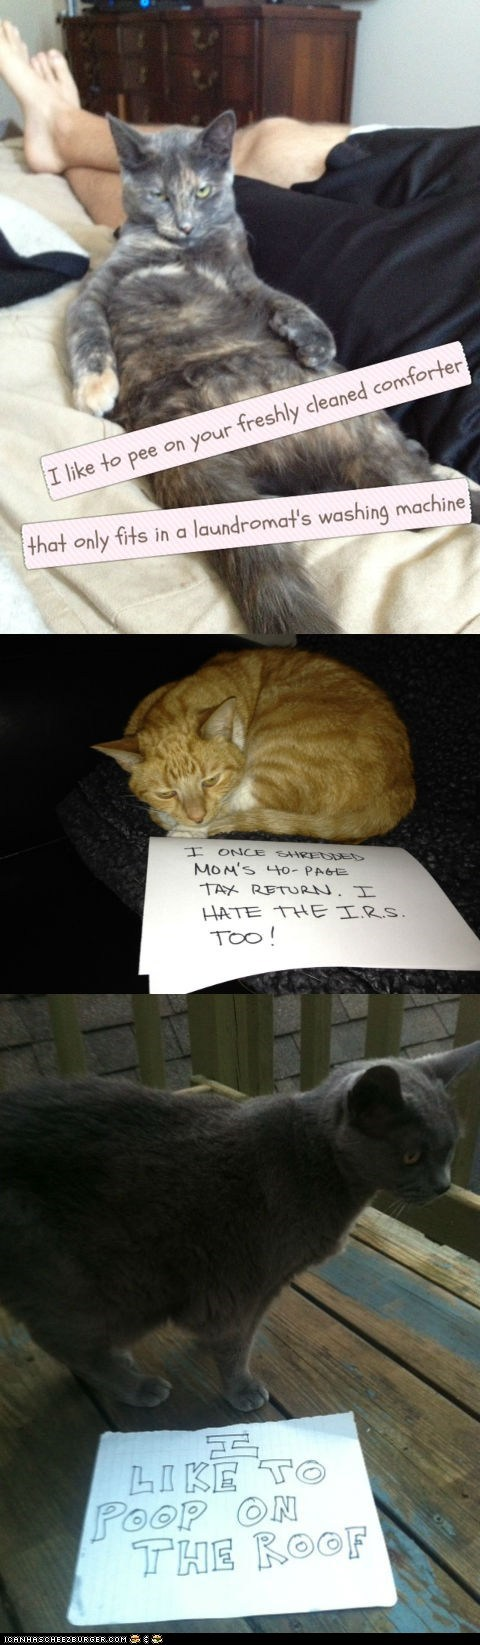 cat shaming Cats destruction dog shaming guilty shame shaming tumblrs - 6549727232